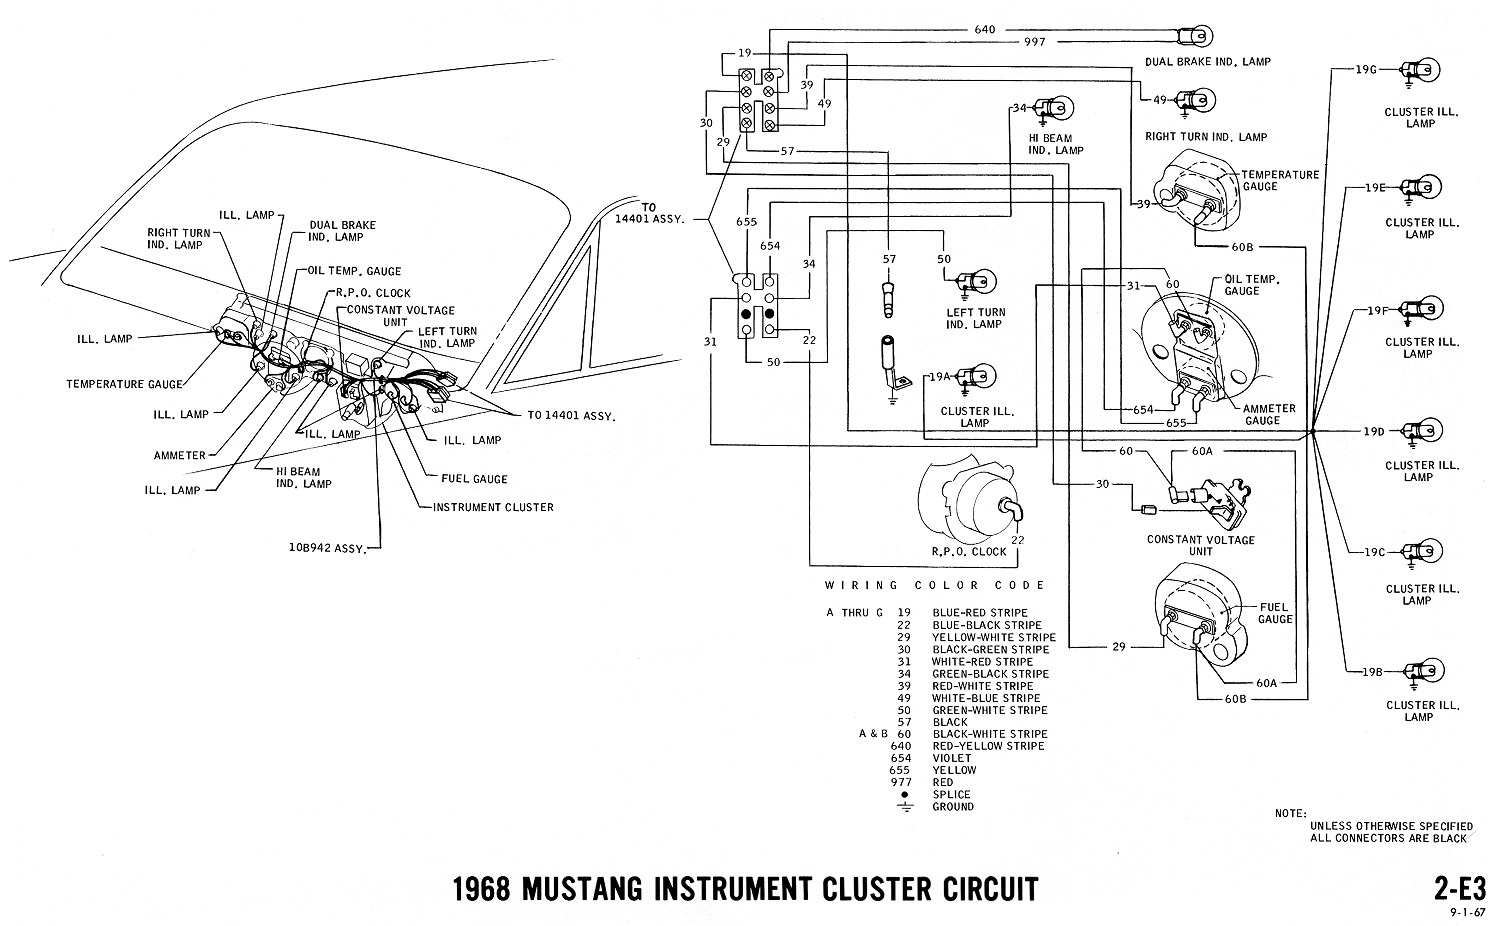 1968 Cadillac Dash Wiring Diagram Schematic 1970 Mustang Electrical Diagrams Rh Cytrus Co 1969